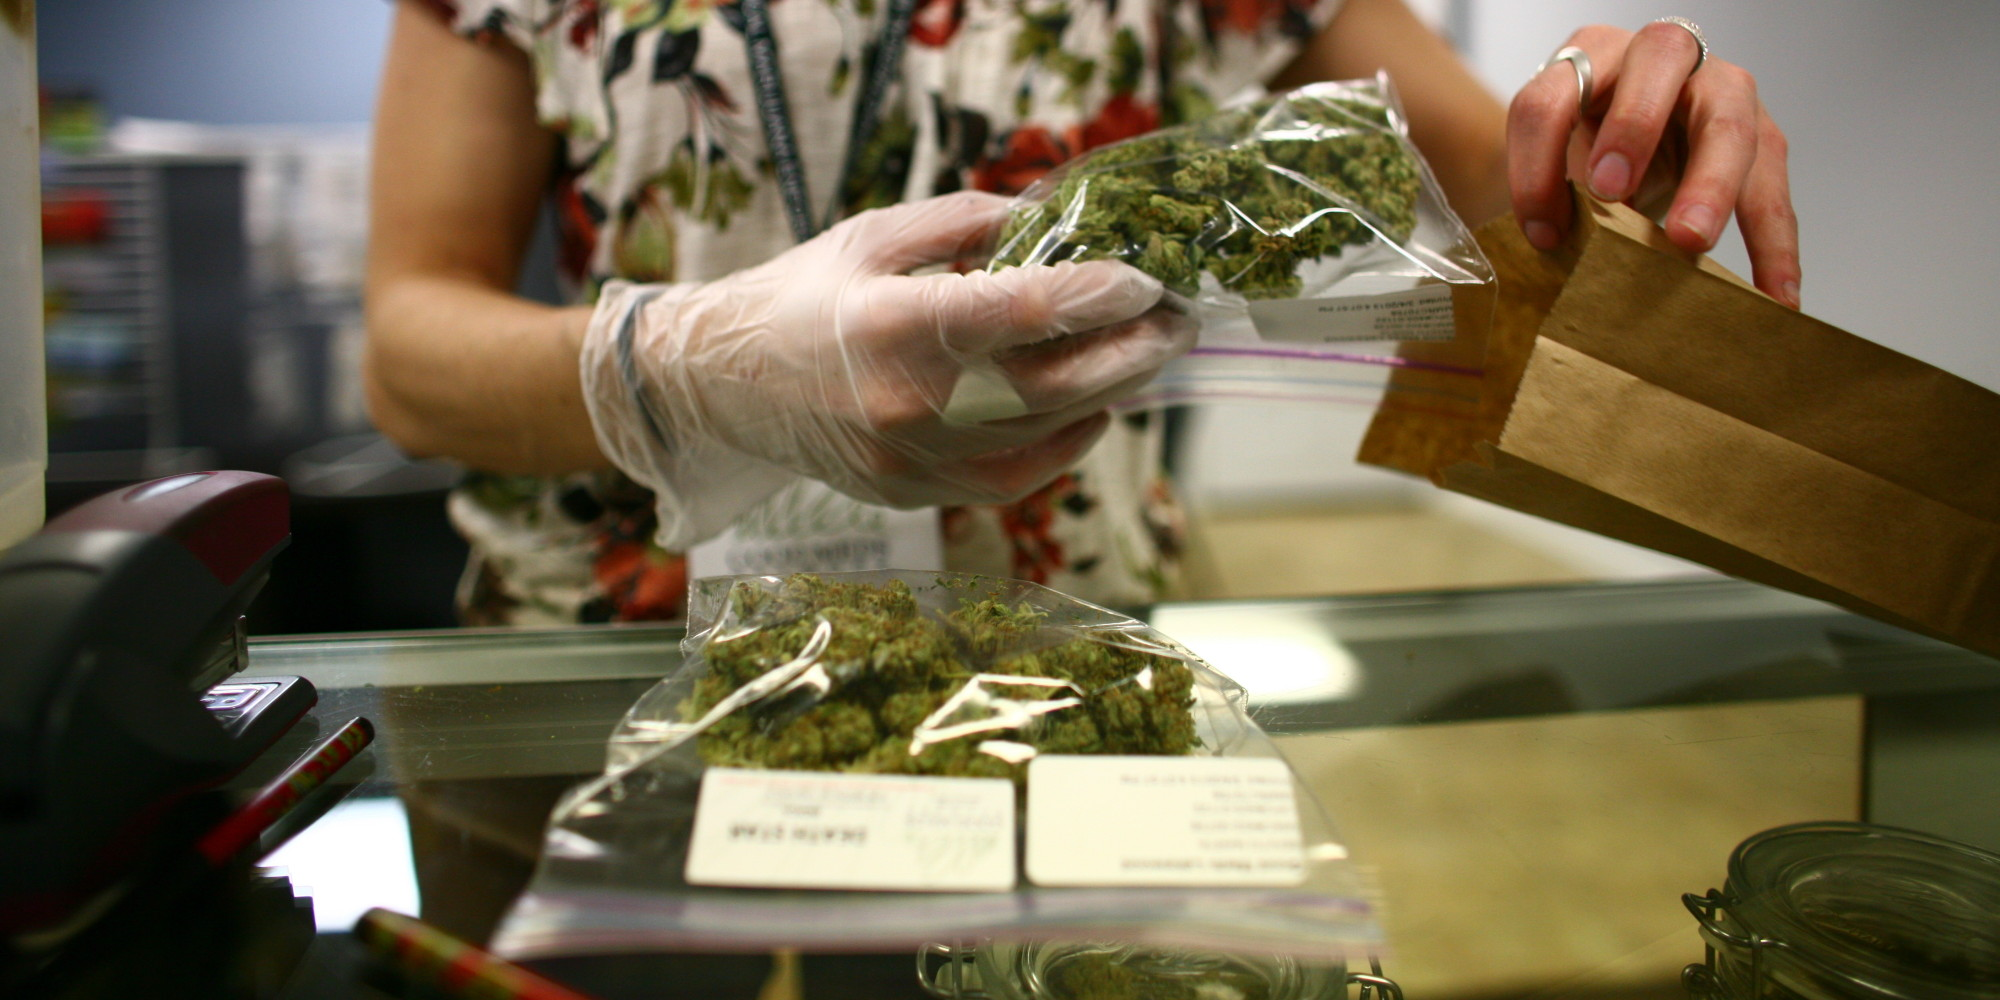 Lakewood, CO - MARCH, 4:  Sales associate, Crystal Guess packages up a patient's cannabis inside a Good Meds medical cannabis center in Lakewood, Colorado, U.S., on Monday, March 4, 2013.   This is at a Good Meds medical cannabis center in Lakewood, and is one of the facilities that Kristi Kelly, Co-Founder of Good Meds Network, operates. (Photo by Matthew Staver/For The Washington Post via Getty Images)